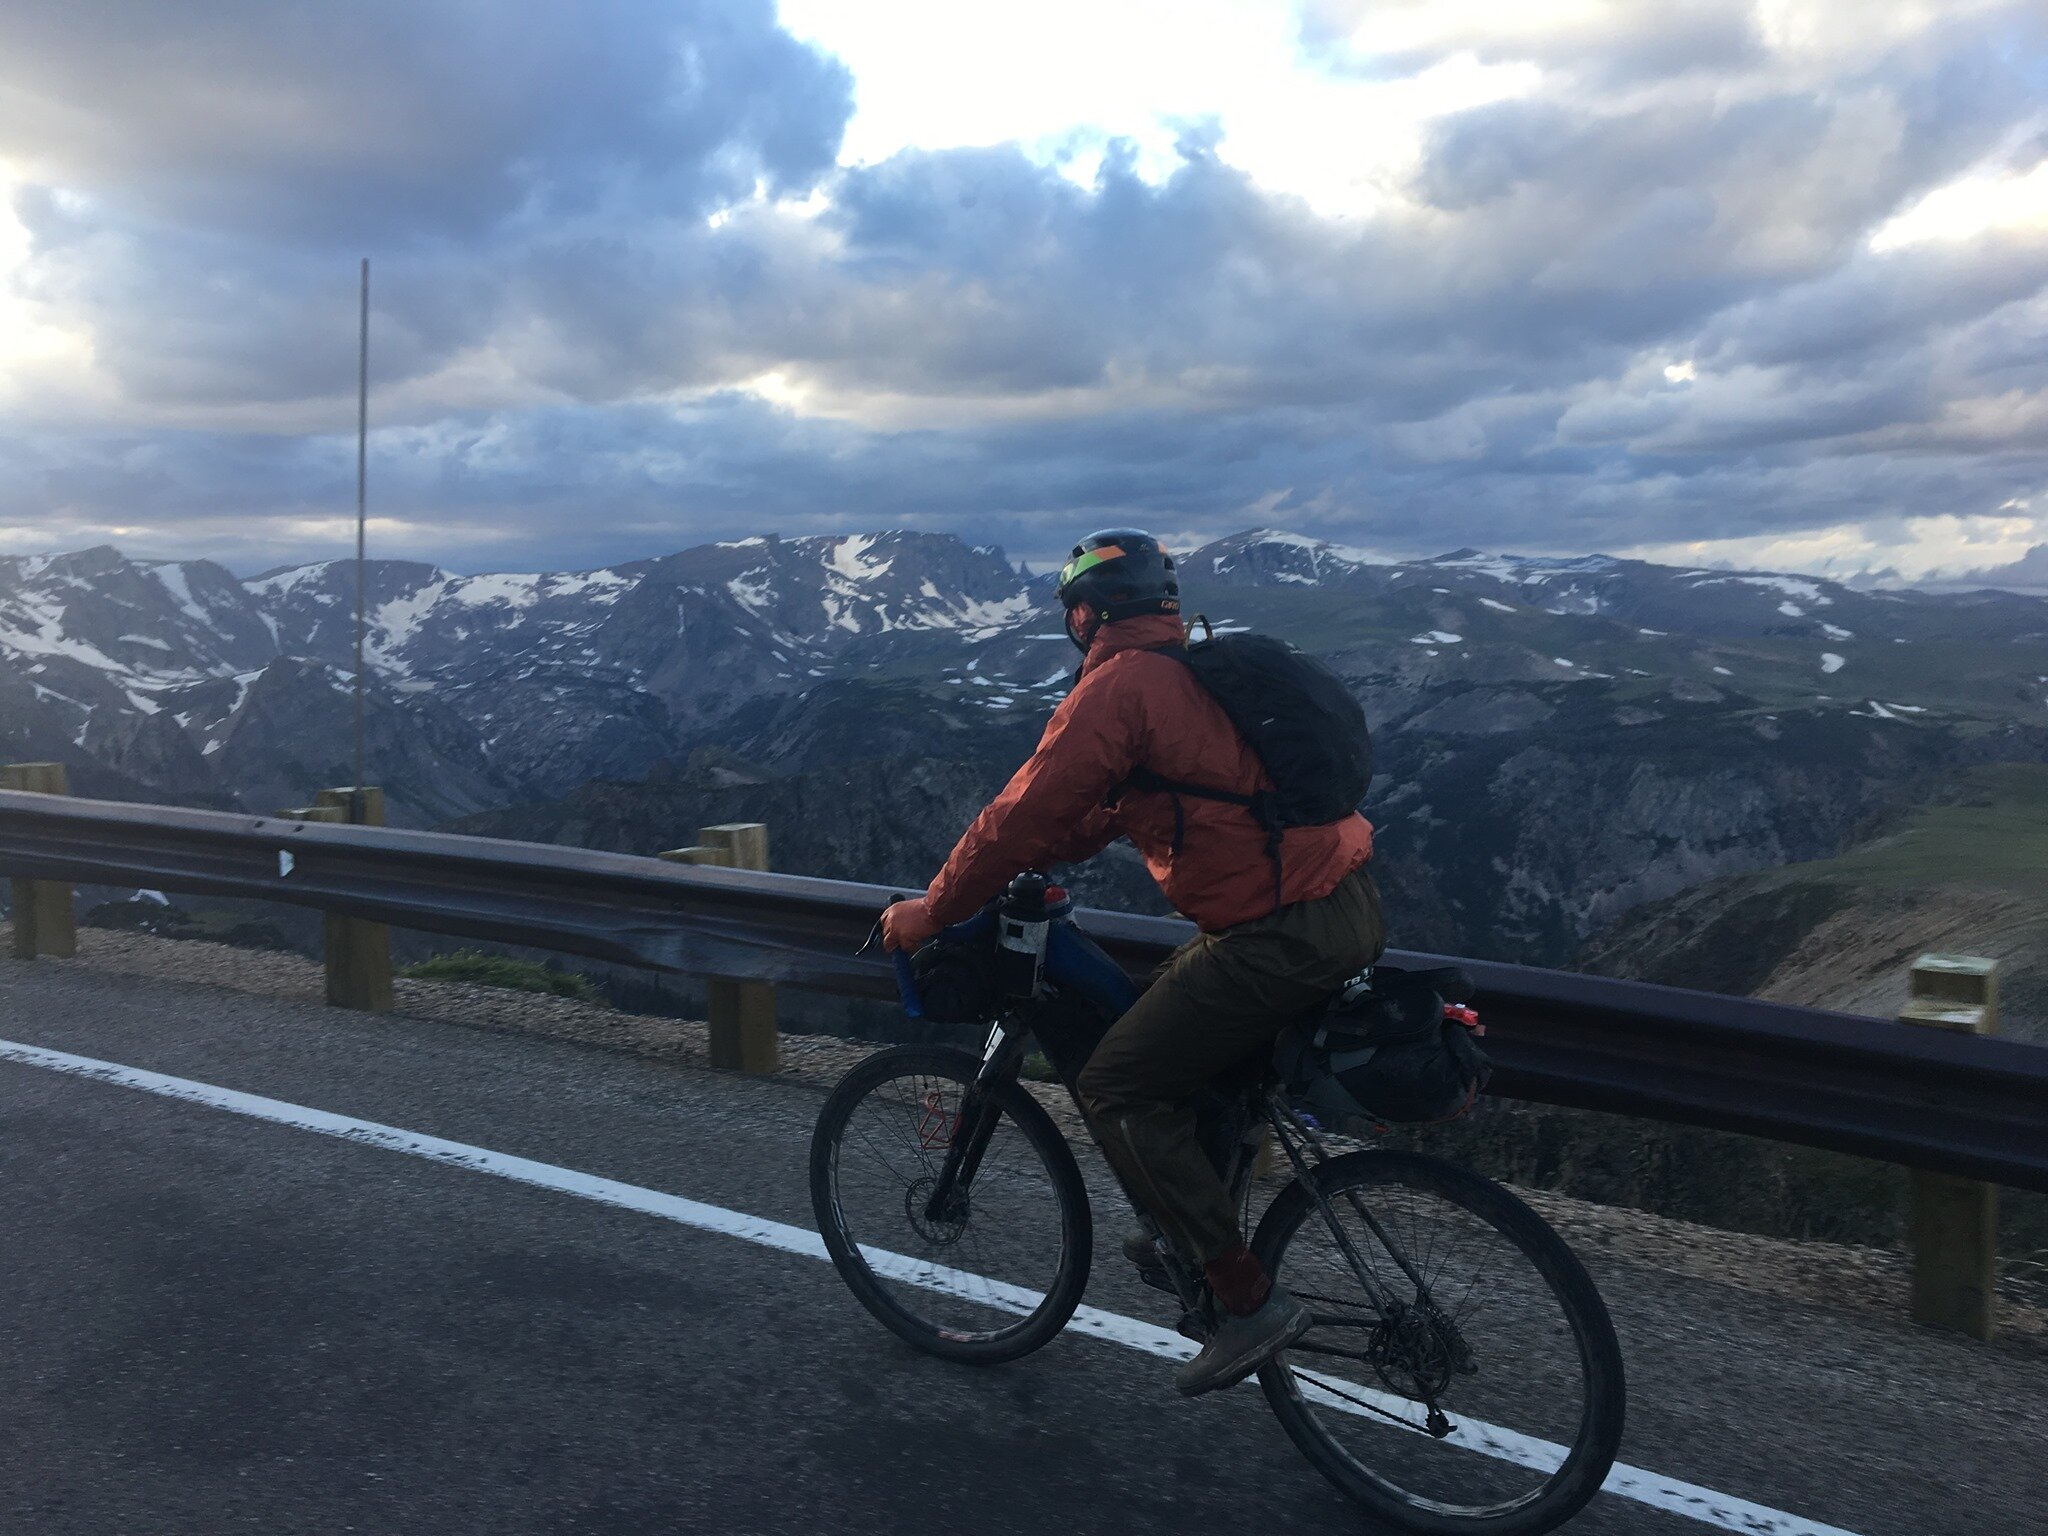 Topping out near summit of Beartooth Pass